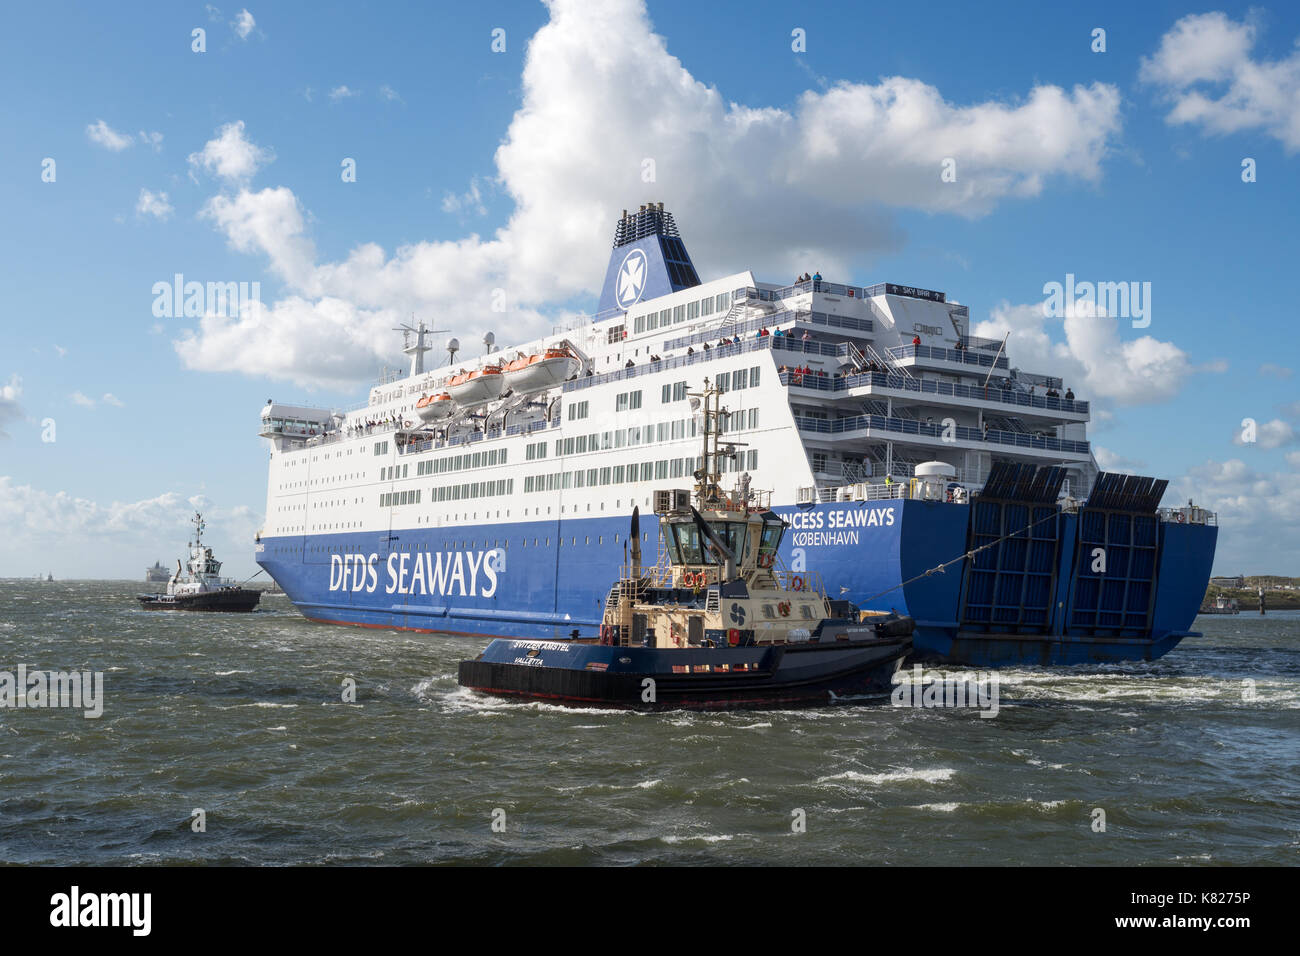 dfds-north-sea-ferry-princess-seaways-be